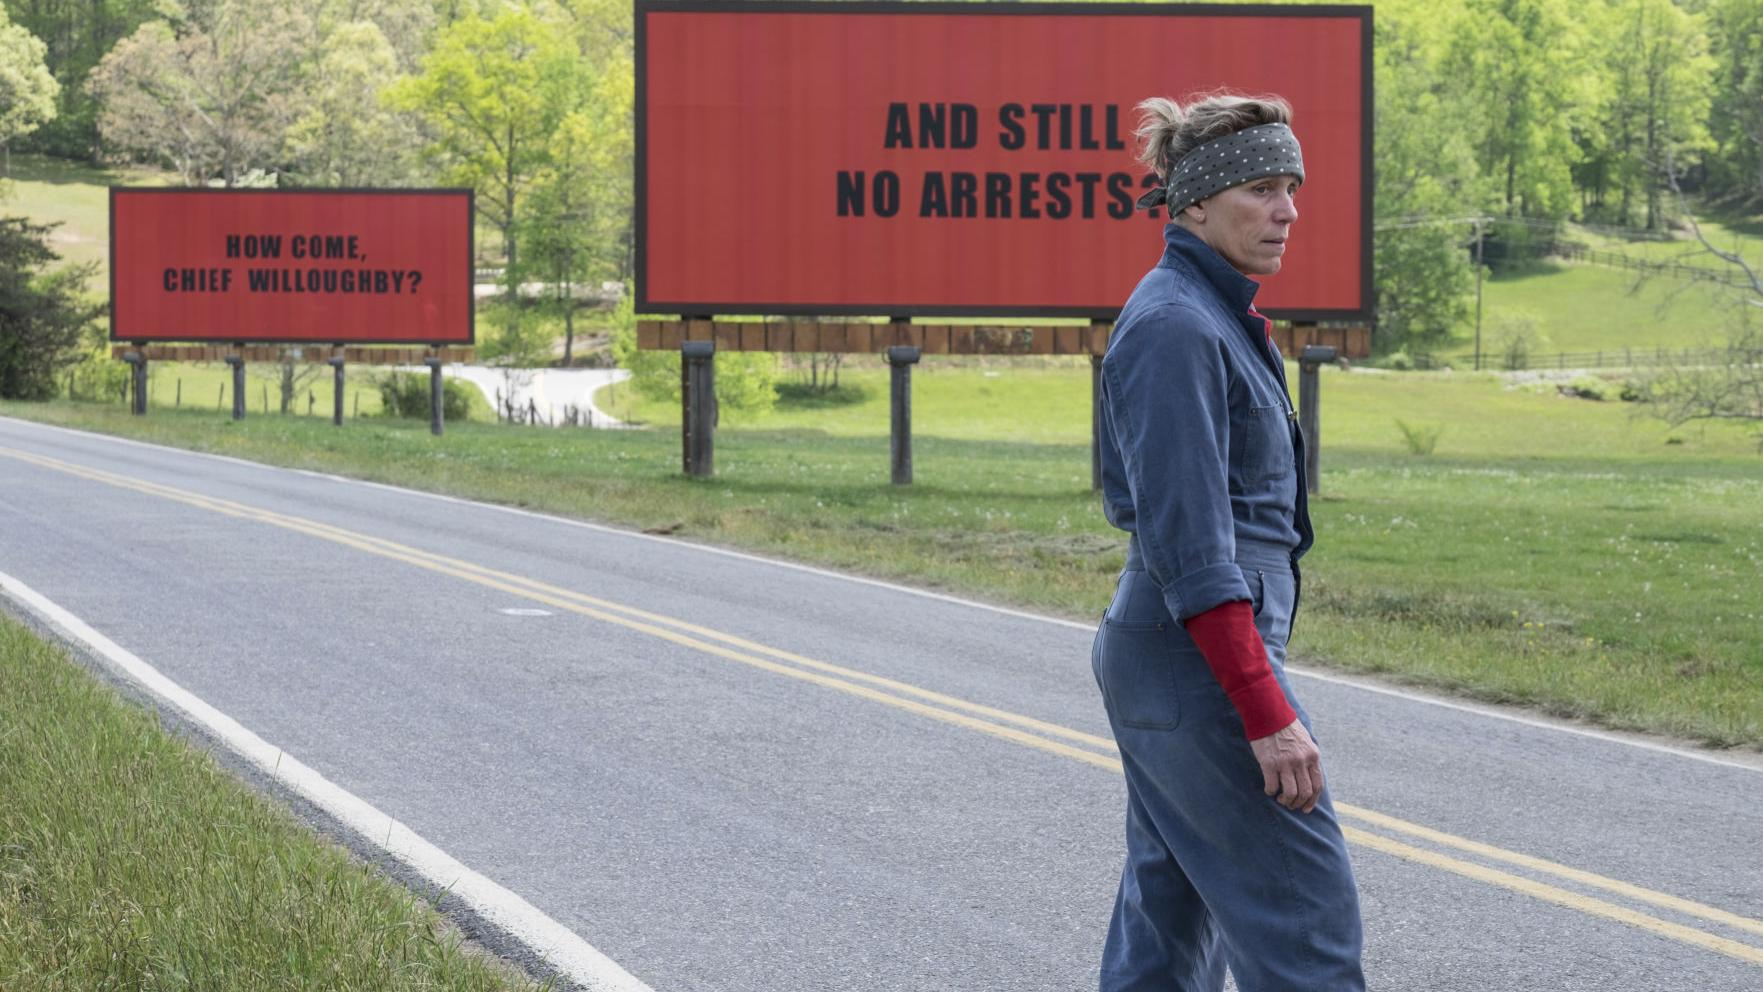 SAG Awards: 'Three Billboards' on top with 4 nominations, 'Big Sick' bounces back